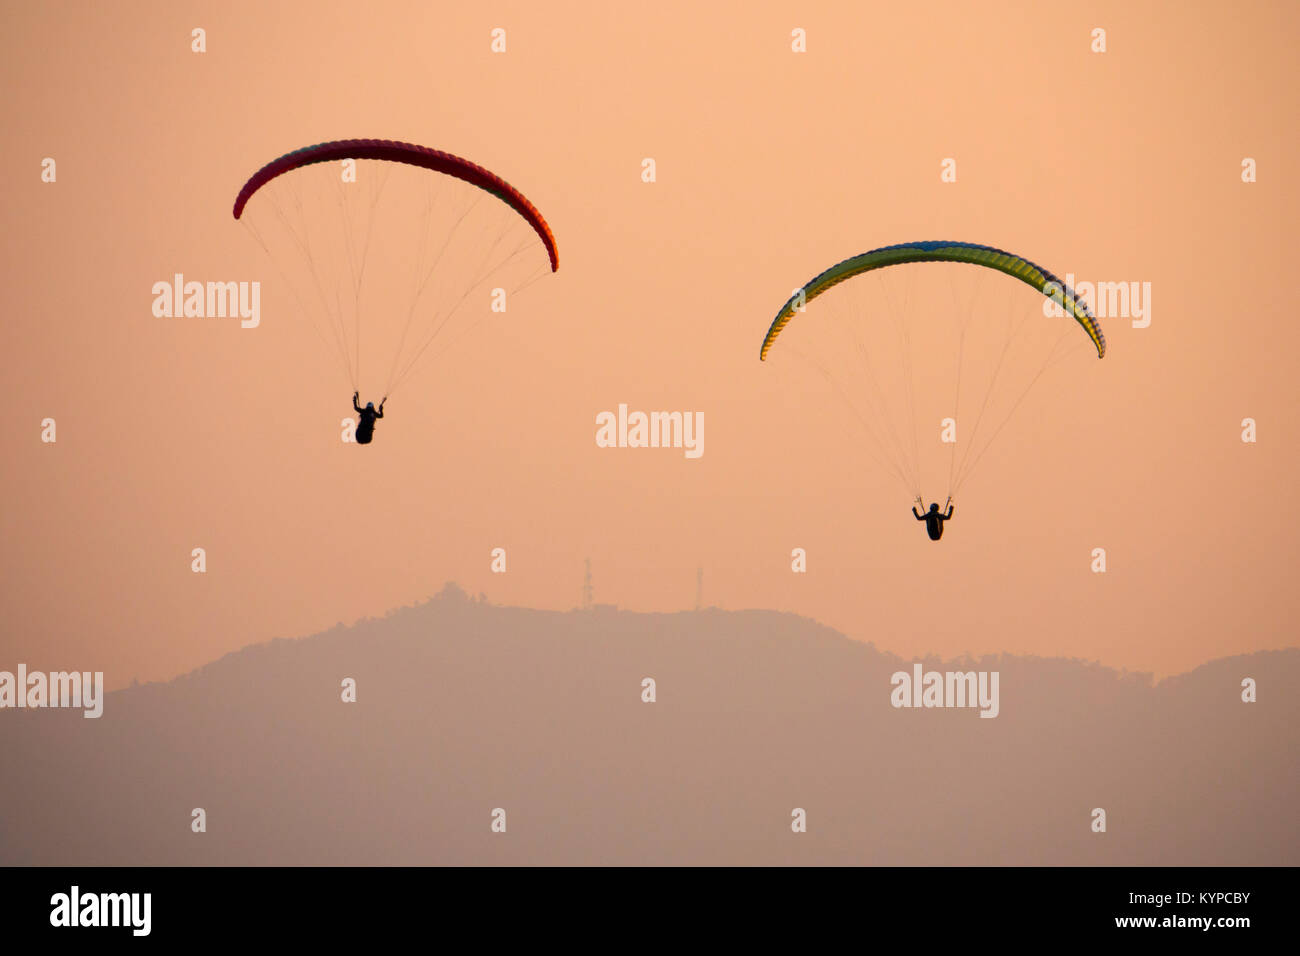 Paragliding at sunset in Pokhara, Nepal Stock Photo